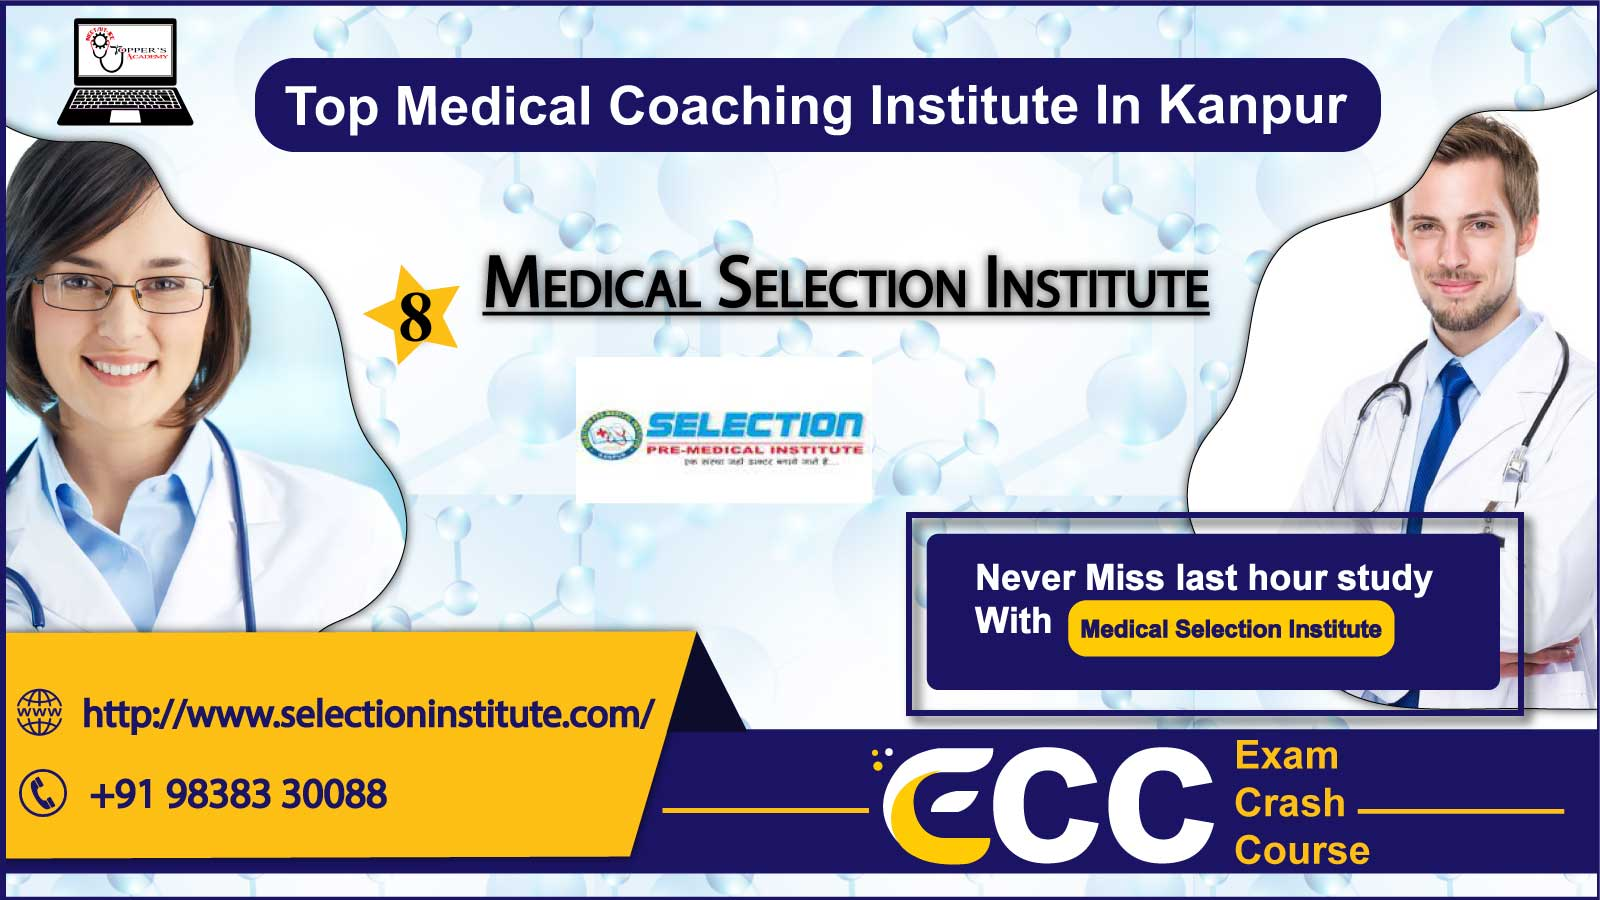 NEET Medical Selection Coaching Institute In Kanpur